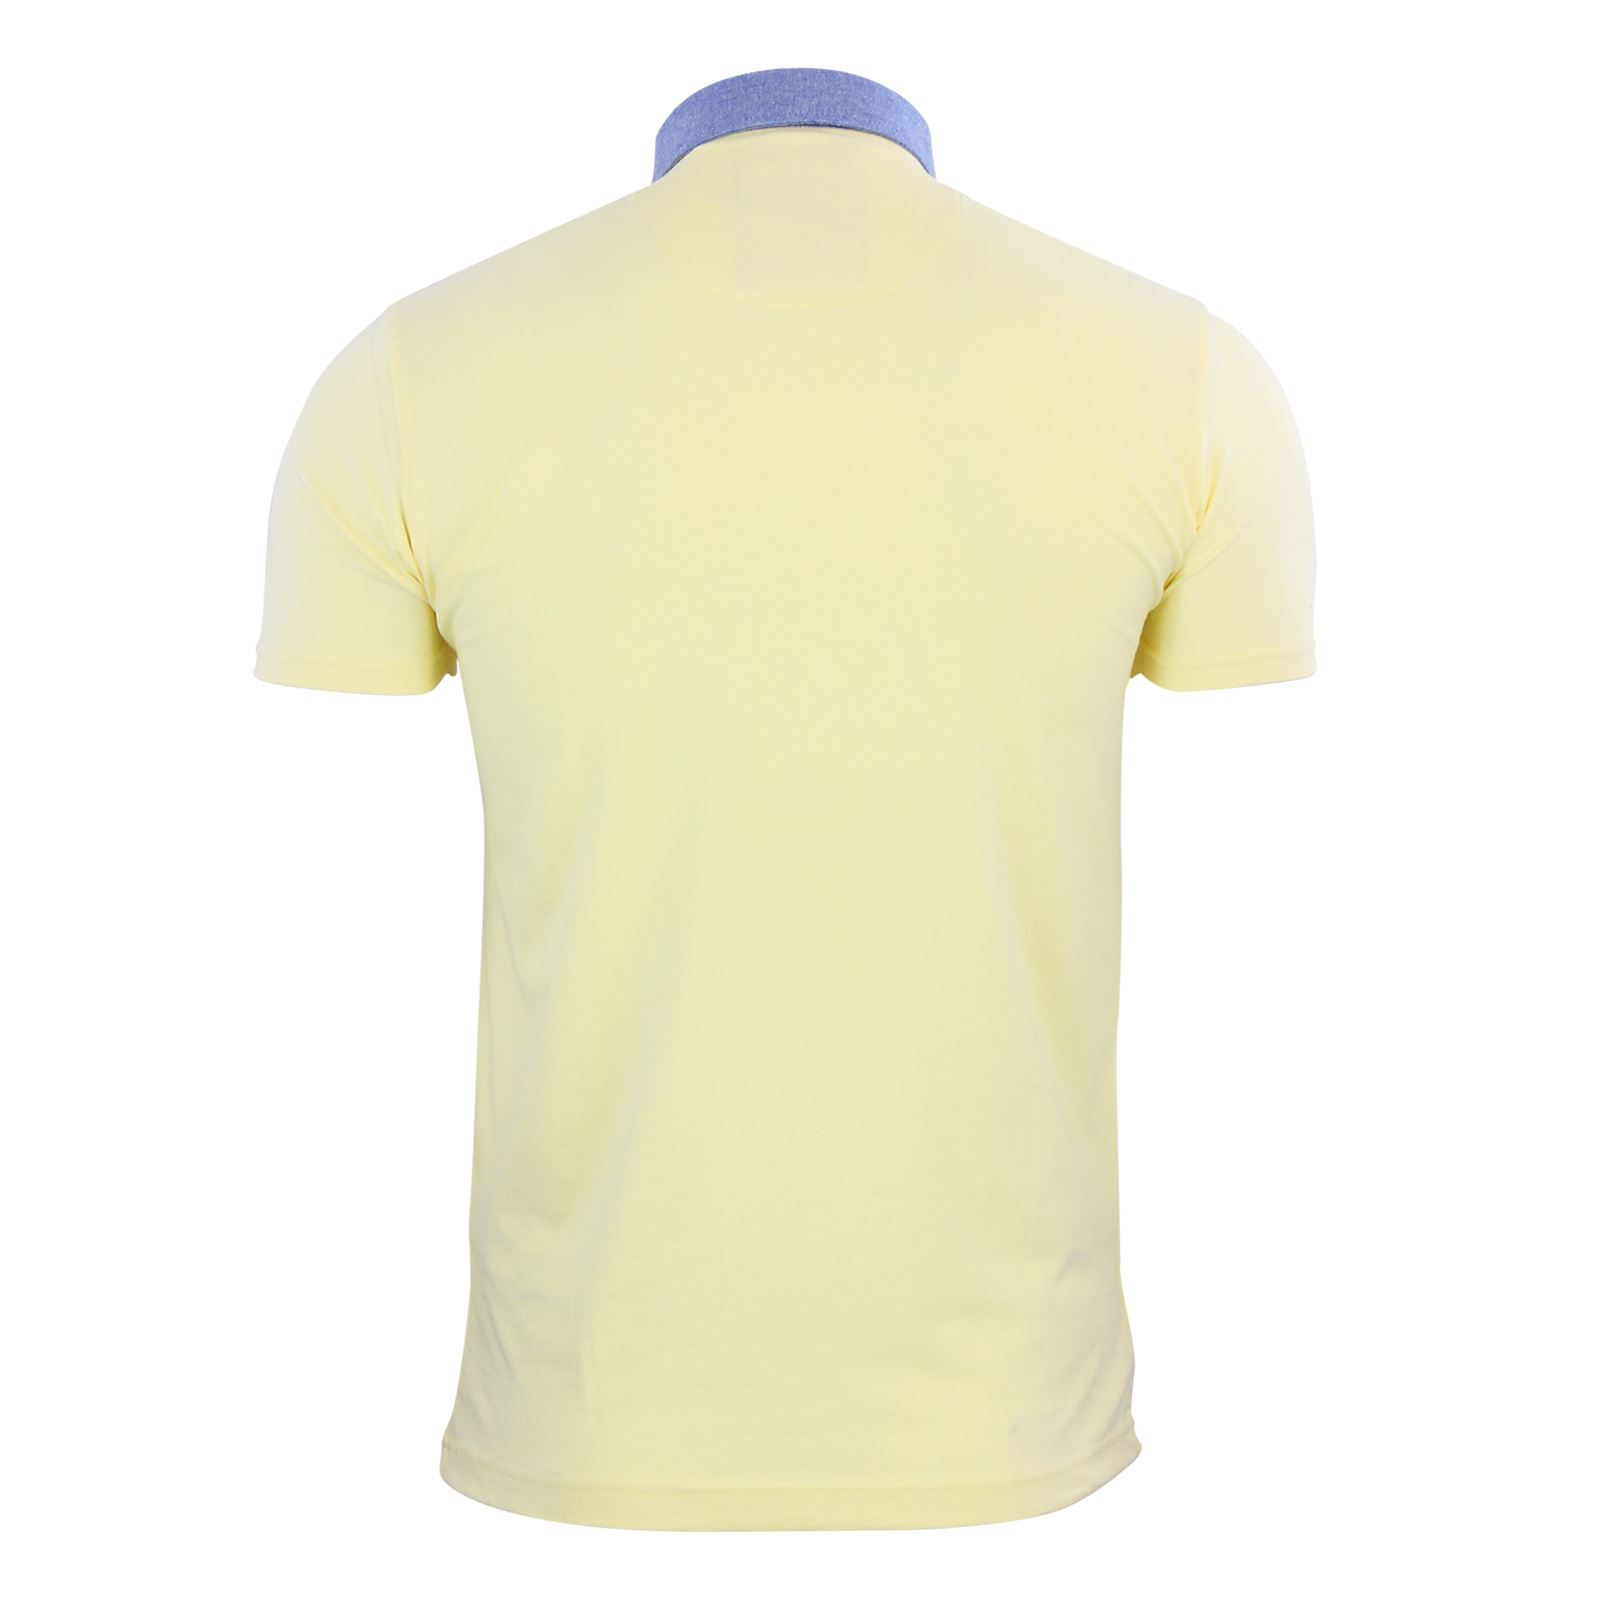 Brave-Soul-Glover-Mens-Polo-T-Shirt-Cotton-Collared-Short-Sleeve-Casual-Top thumbnail 18